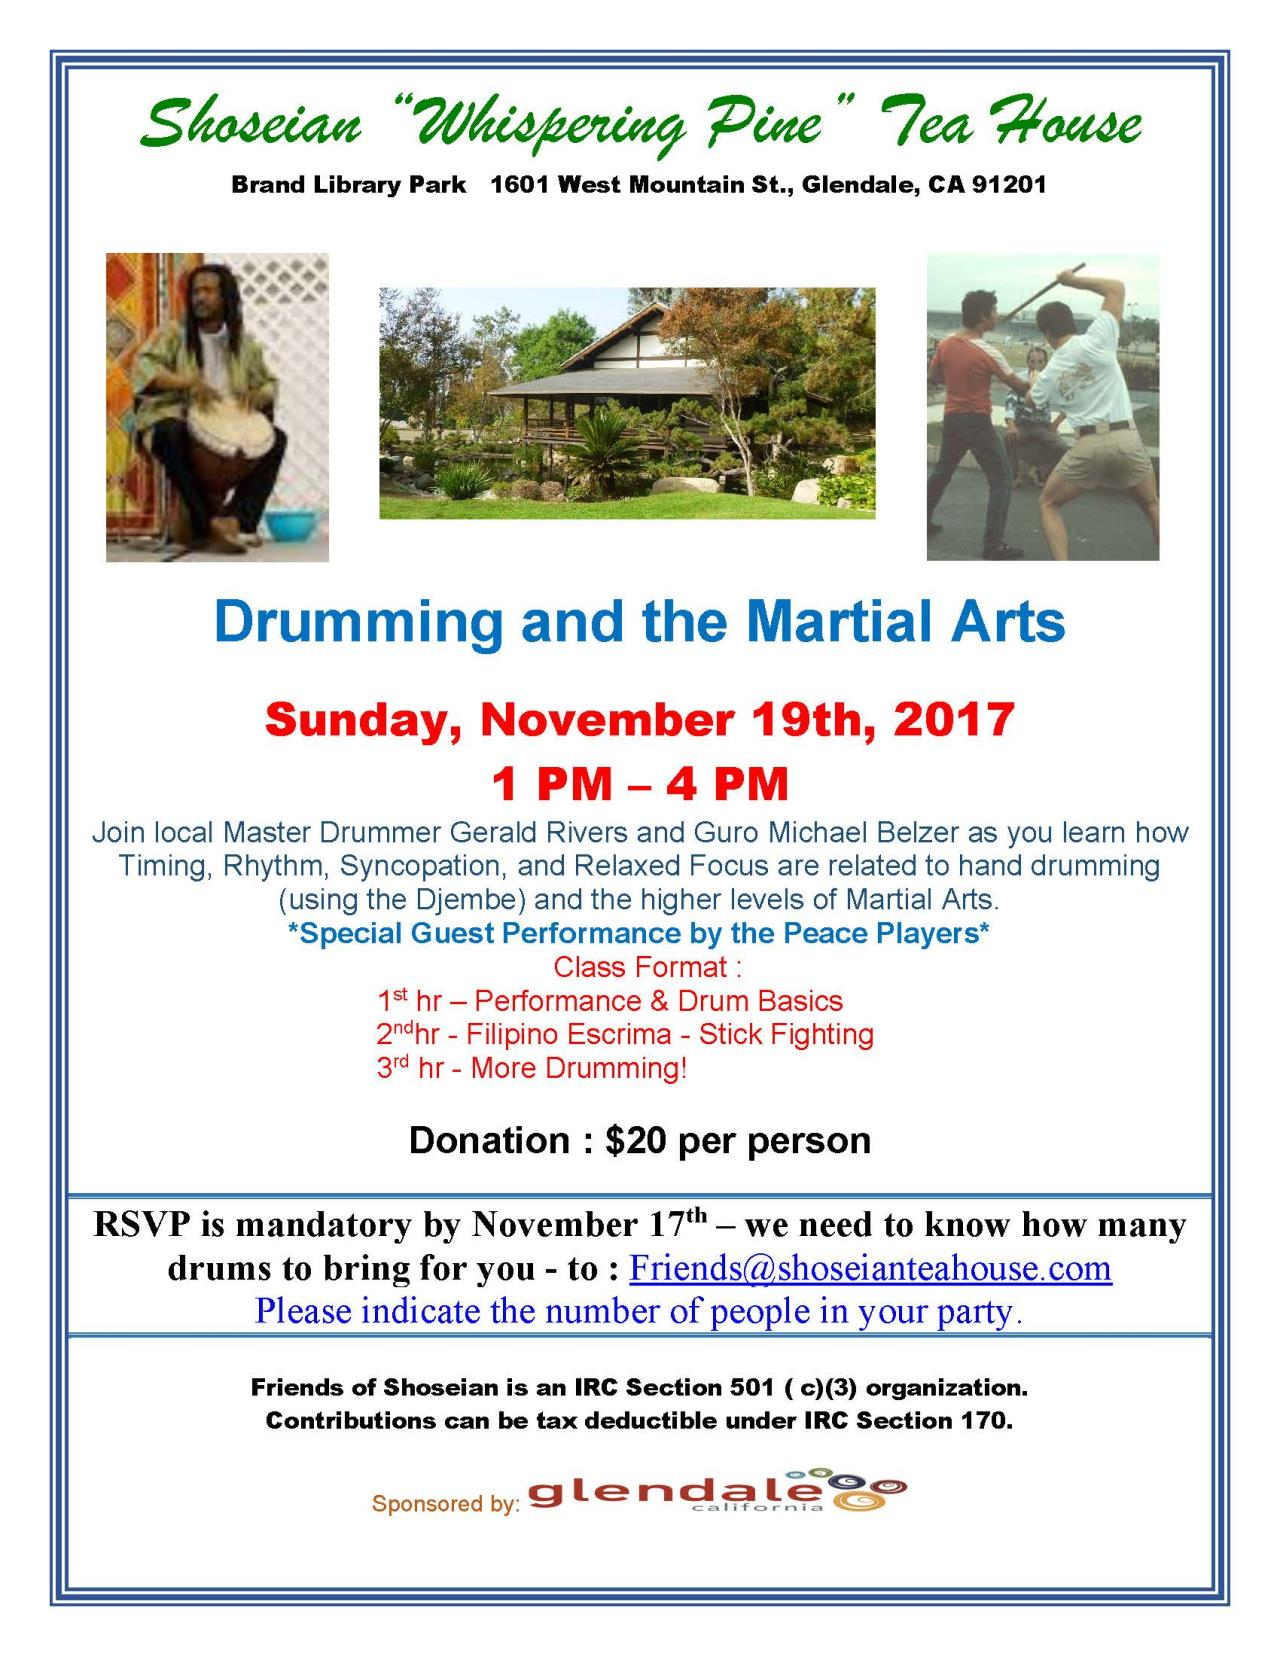 Shoseian Tea House - Drumming and the Martial Arts - 11-19-17 V2